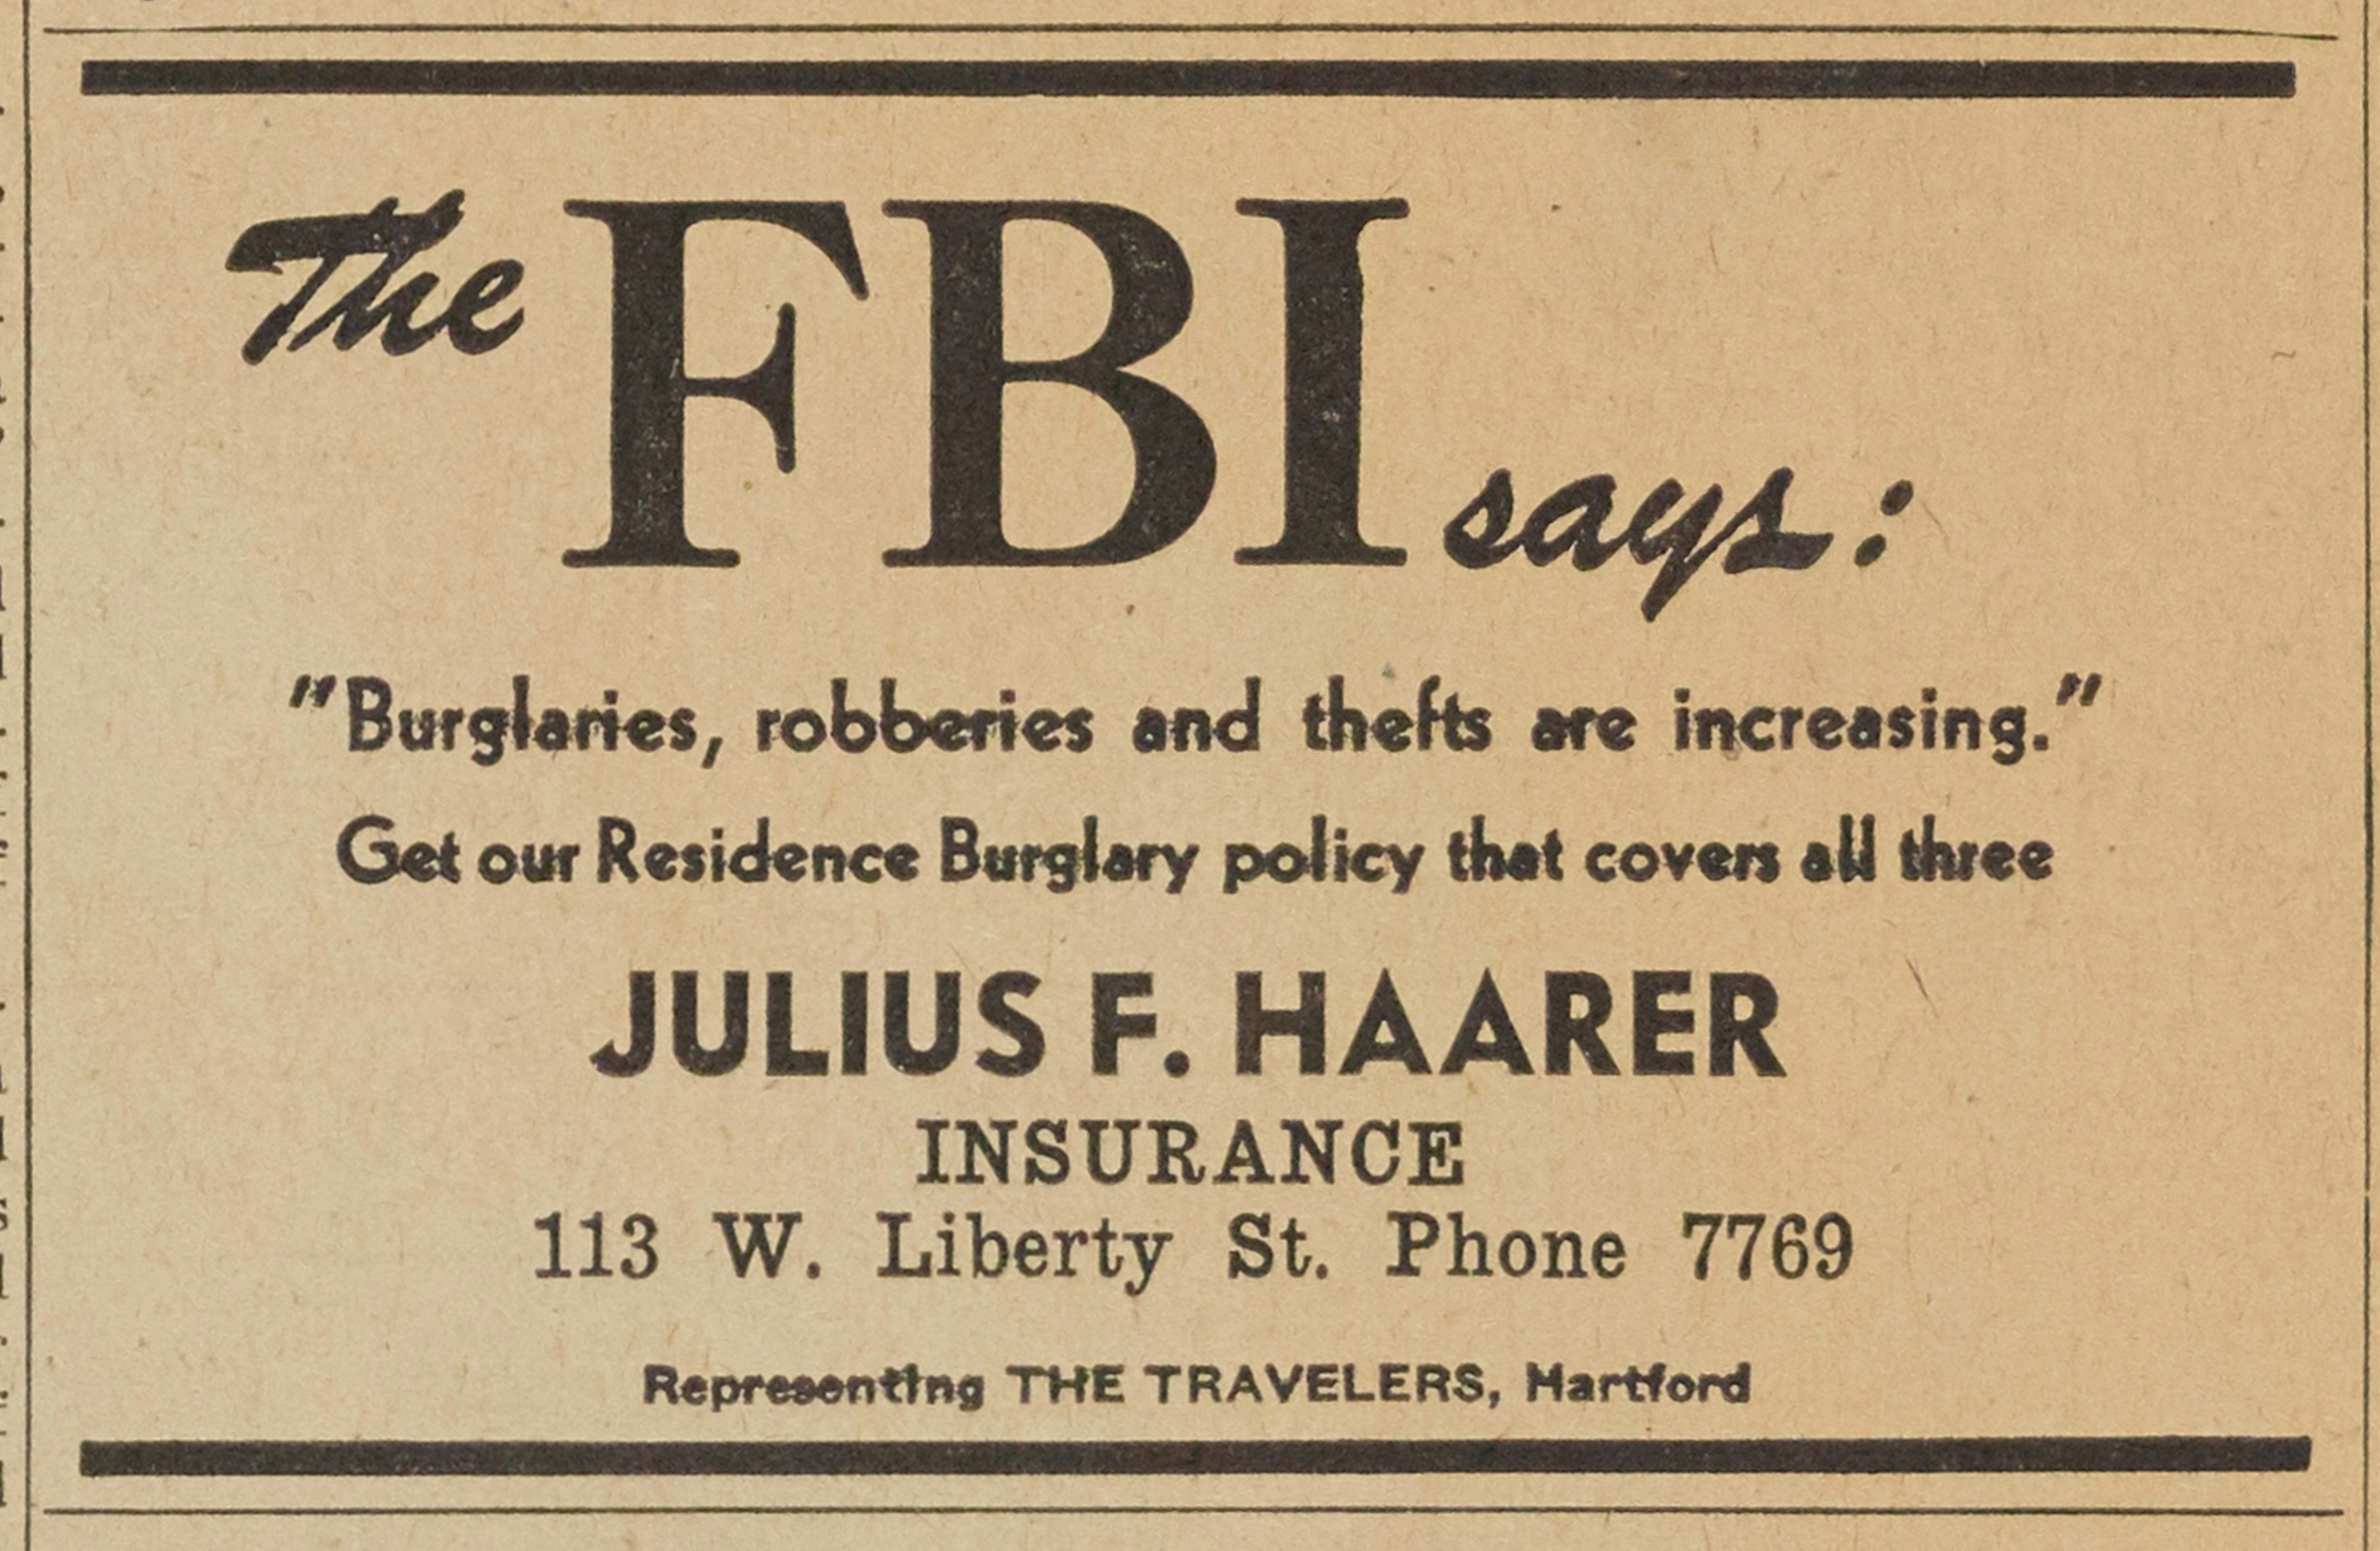 Julius F. Haarer - Insurance image